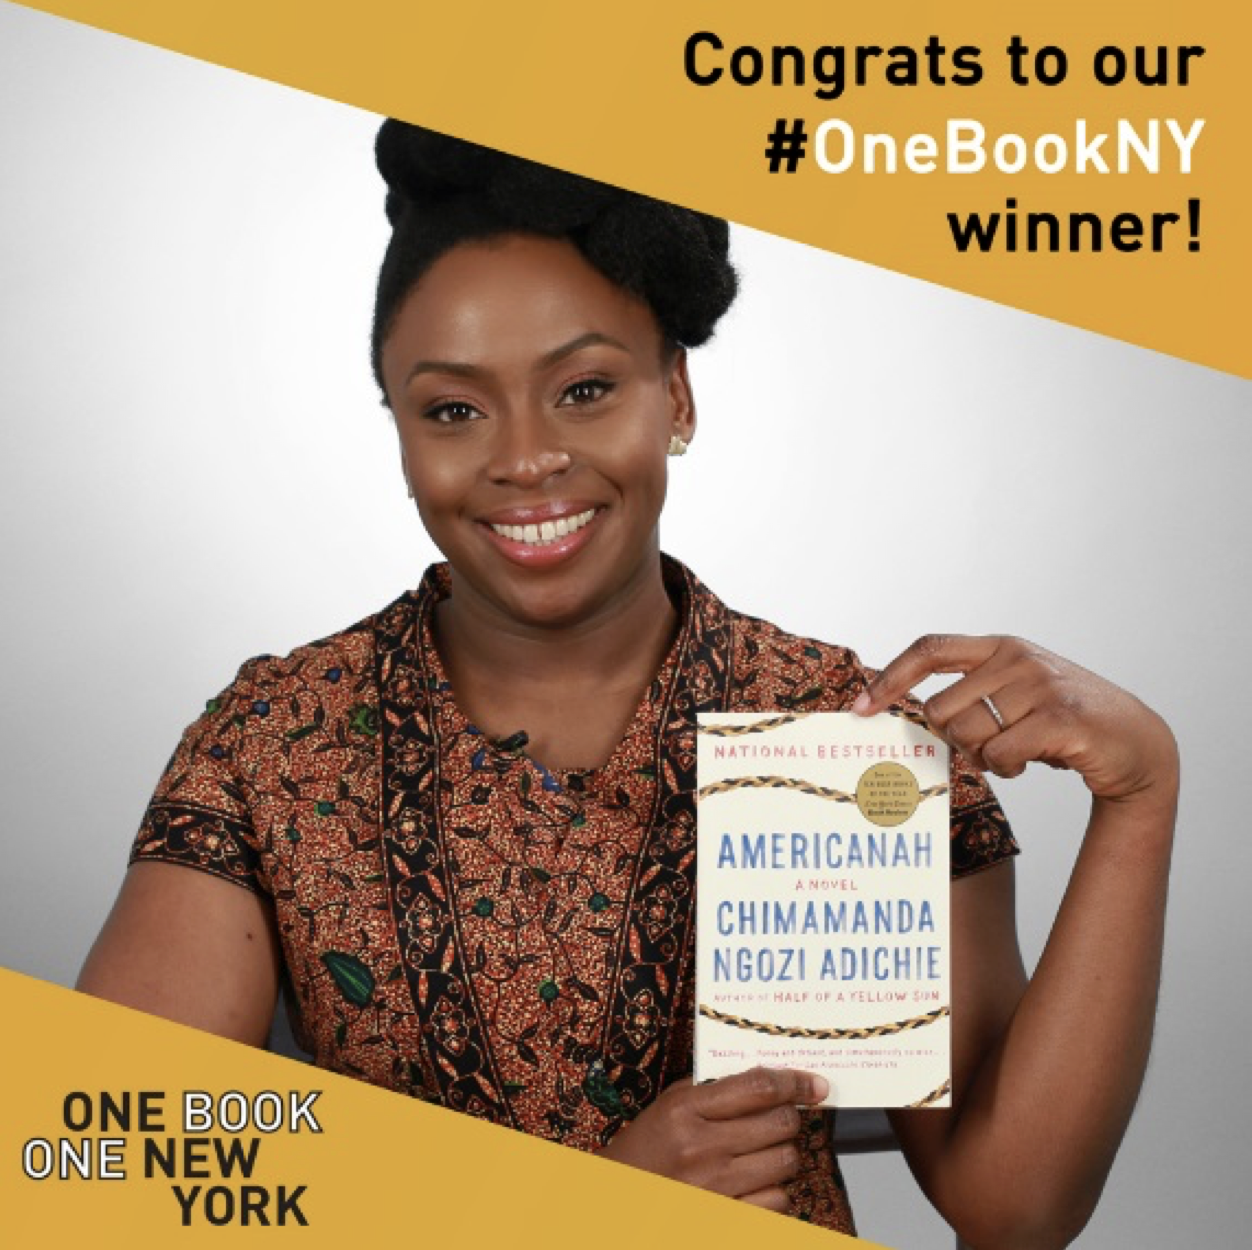 New Yorkers chose Chimamanda Ngozi Adichie's Americanah as the winning book